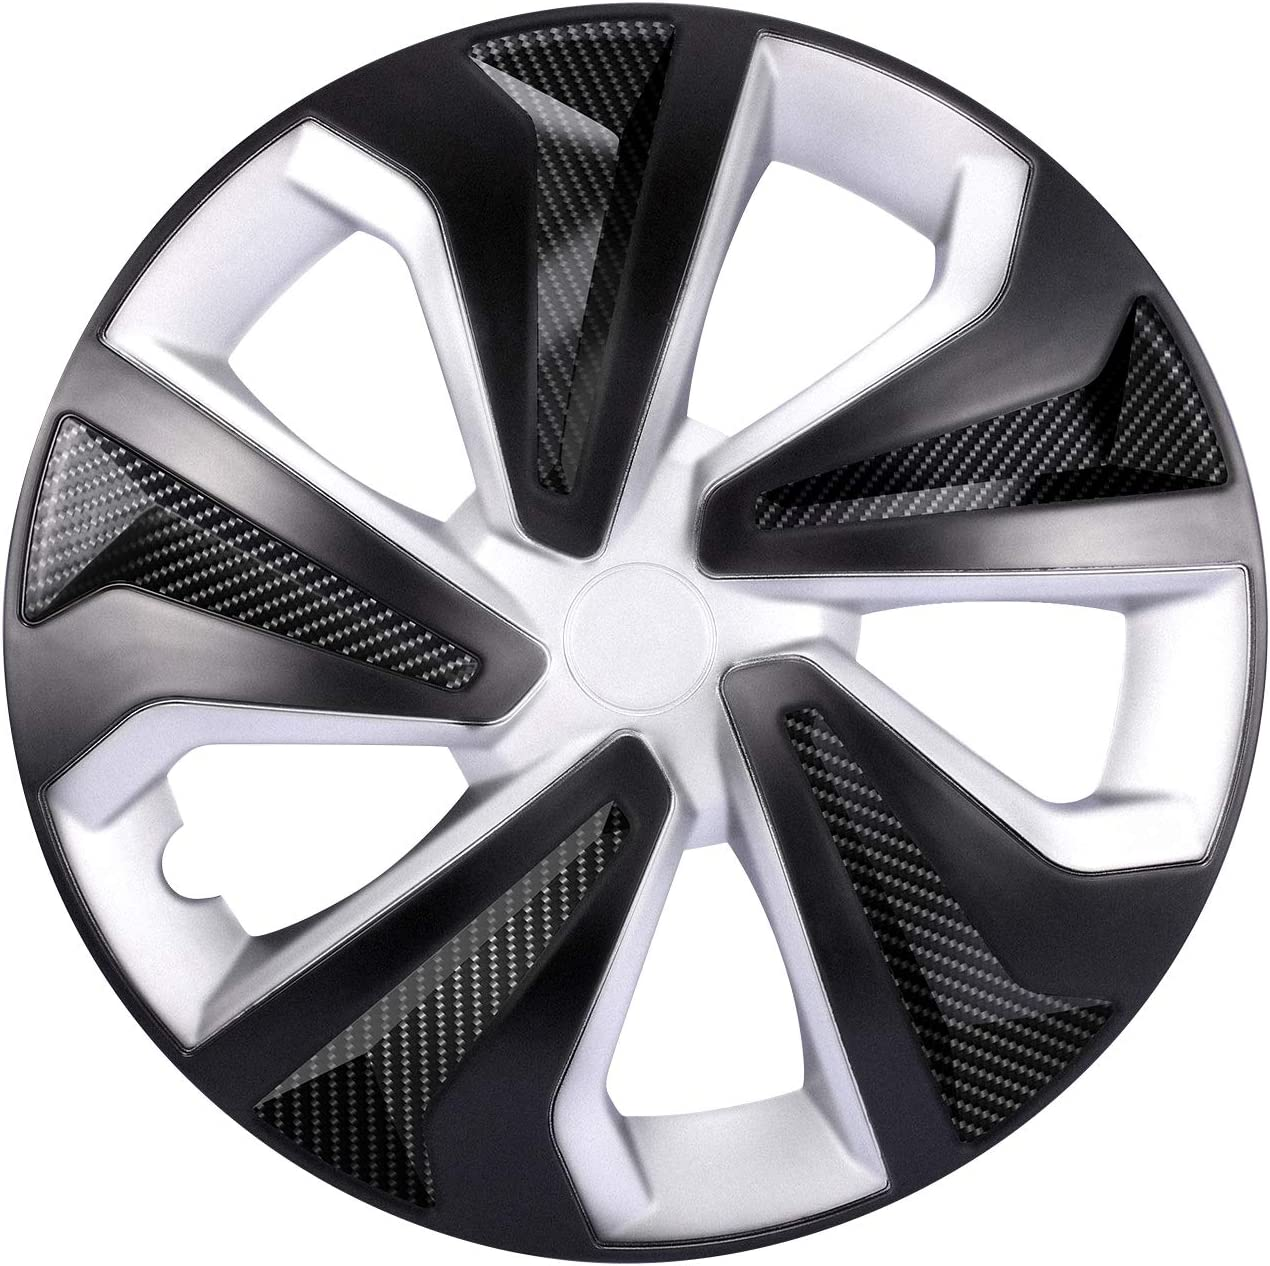 GSSUSA Hubcaps Black and Silver 15 Inch Wheel Covers Plastic Car Accessories Hub Cap Snap on Atuo Tire Rim Replacement Exterior Cap 4 Pack